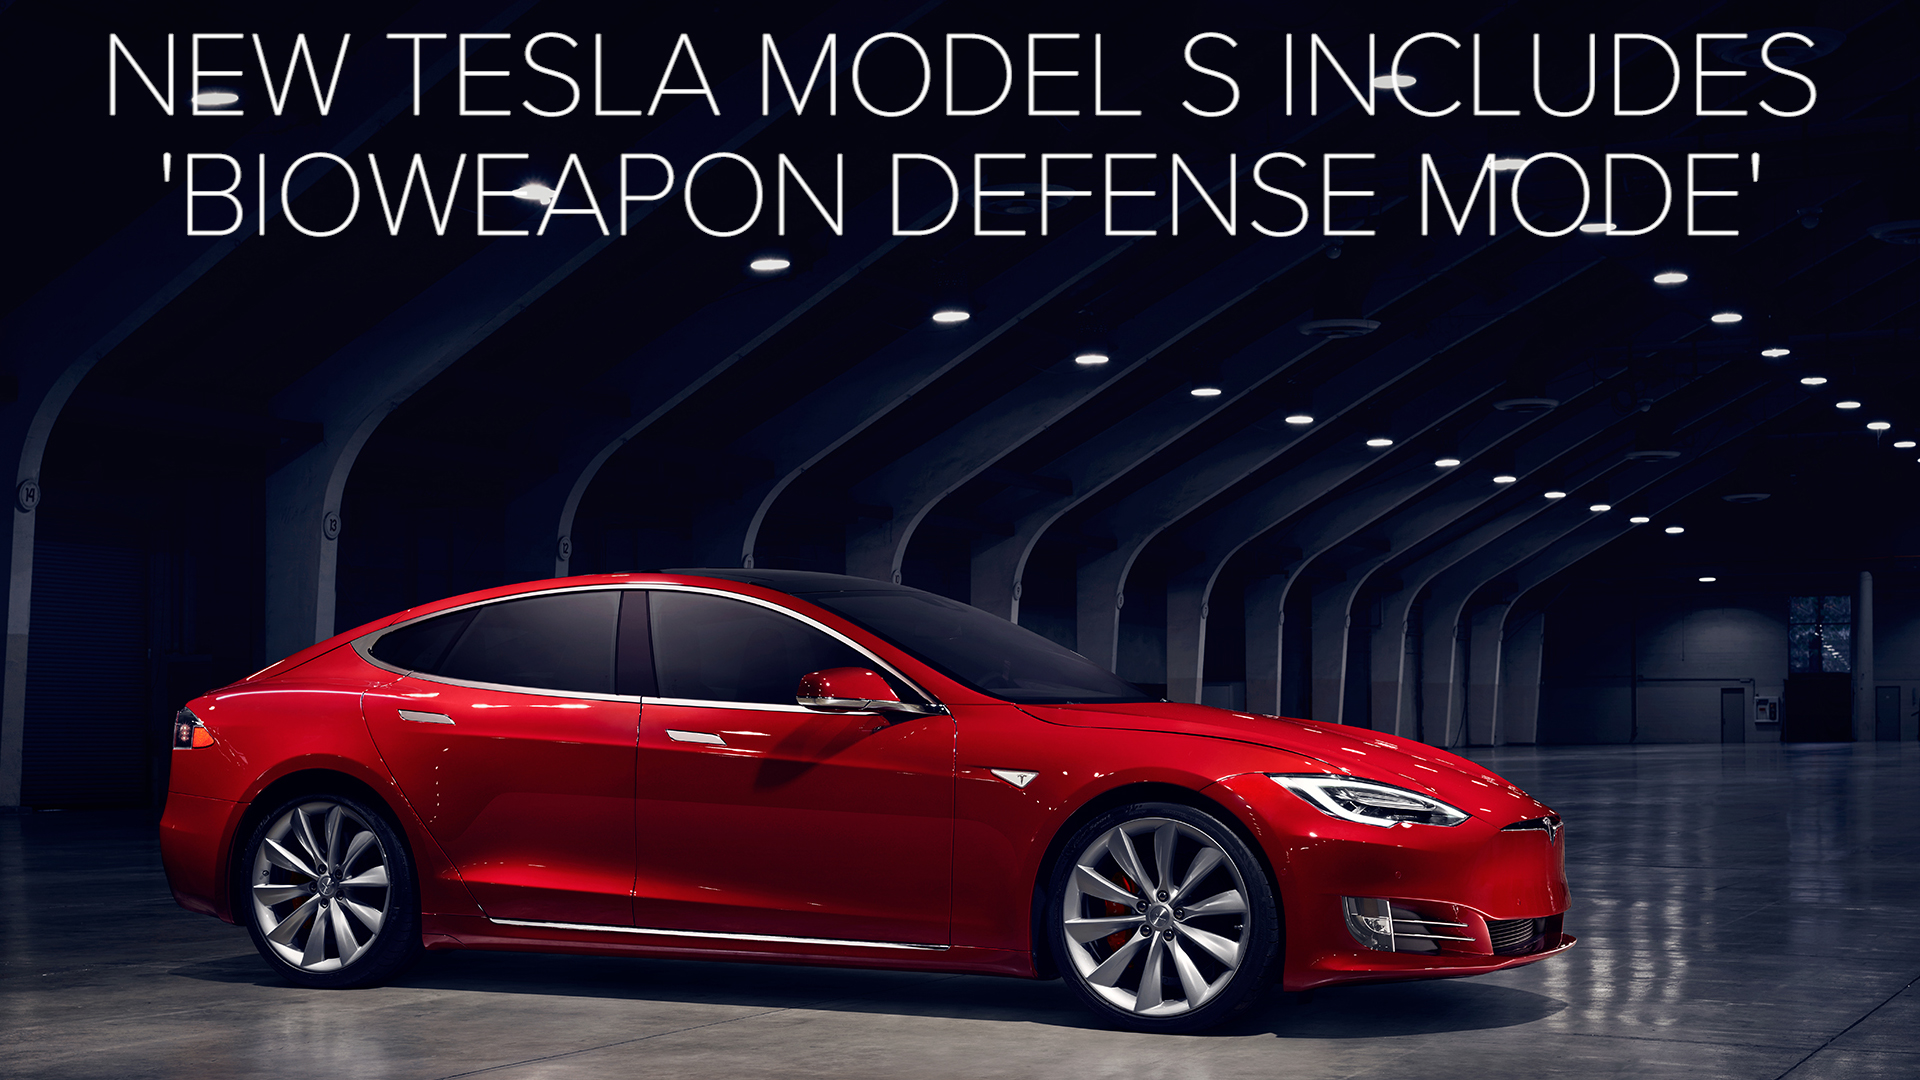 Video: New Tesla Model S includes Bioweapon Defense Mode